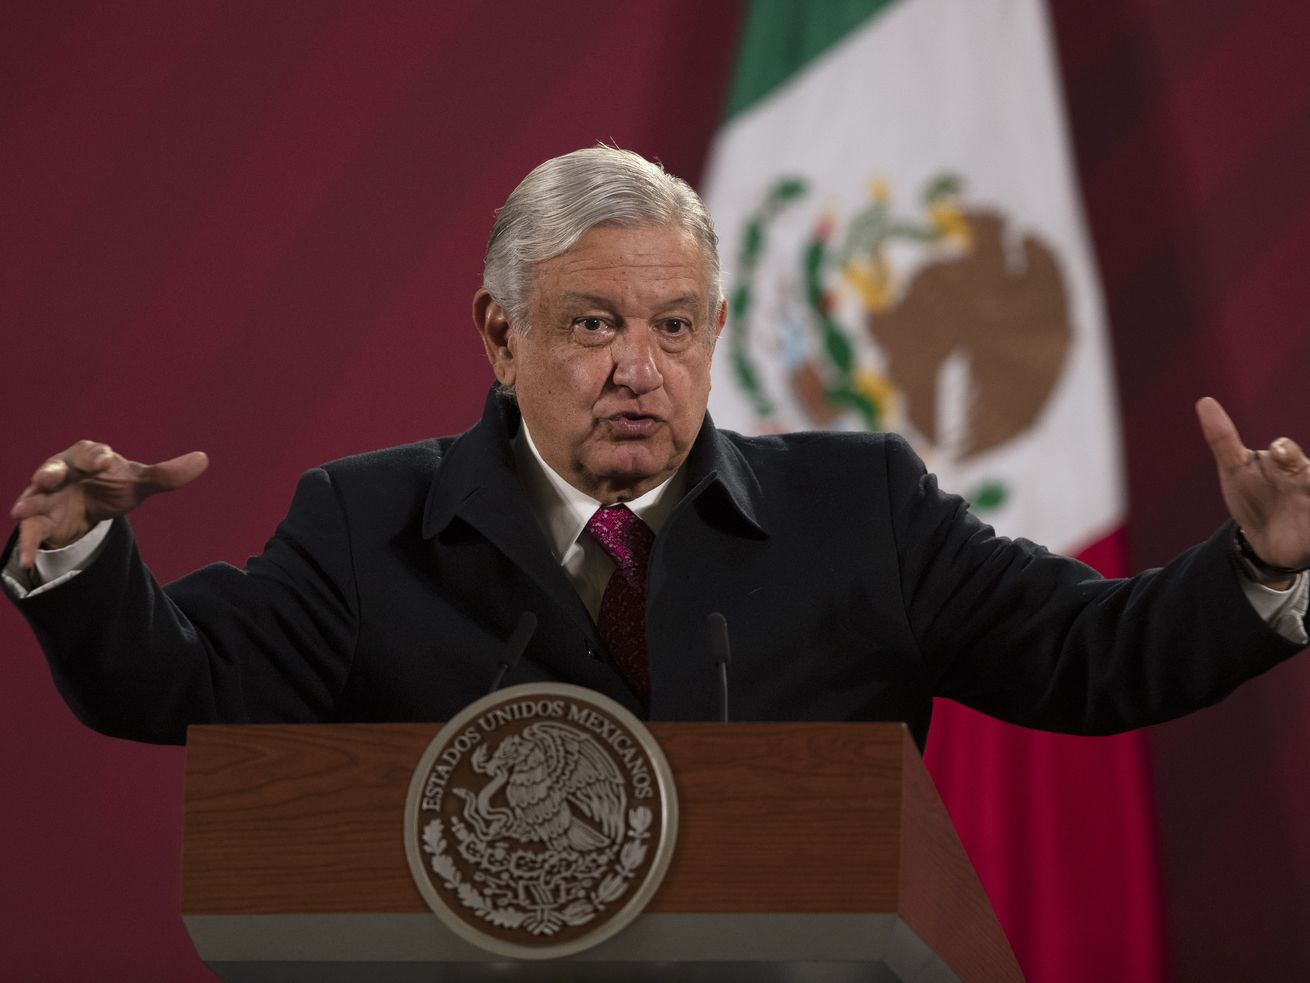 FILE - In this Dec. 18, 2020 file photo, Mexican President Andres Manuel Lopez Obrador gives his daily, morning news conference at the presidential palace, Palacio Nacional, in Mexico City. Mexico President Andrés Manuel López Obrador says he has tested positive for COVID-19 and is under medical treatment, Sunday, Jan. 24, 2021. (AP Photo/Marco Ugarte, File)